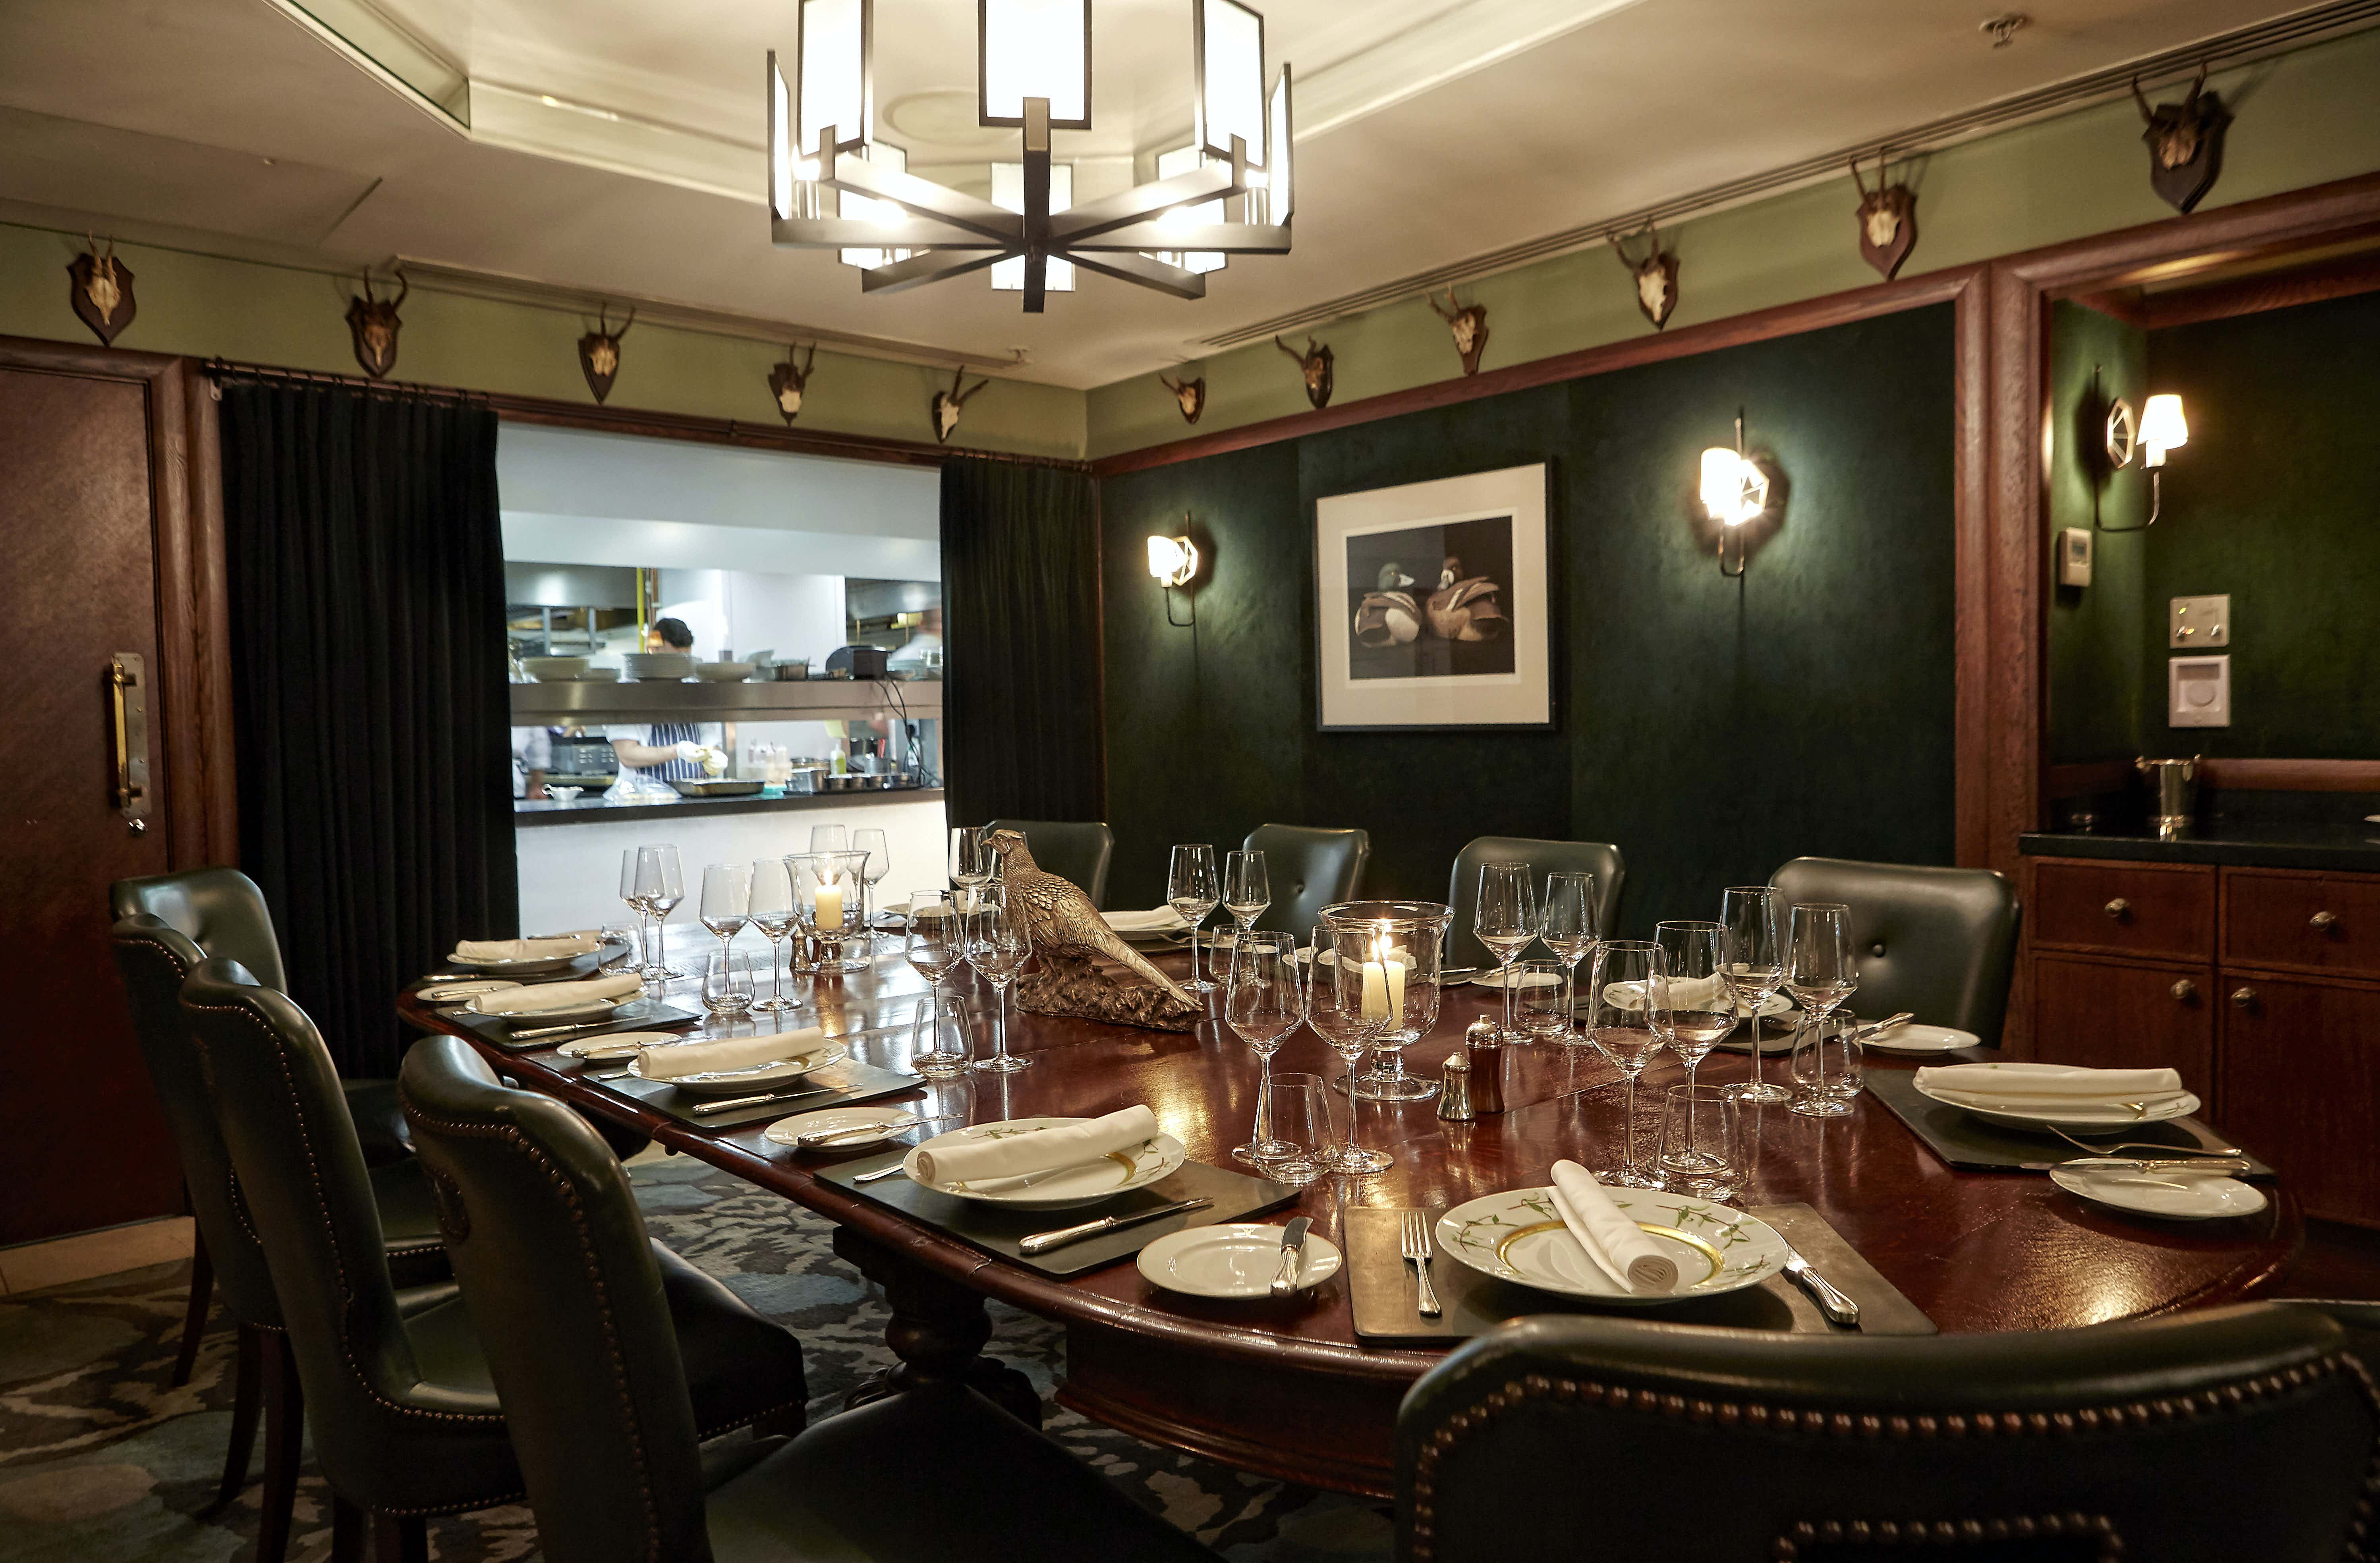 Chef's Table, Corrigan's Mayfair